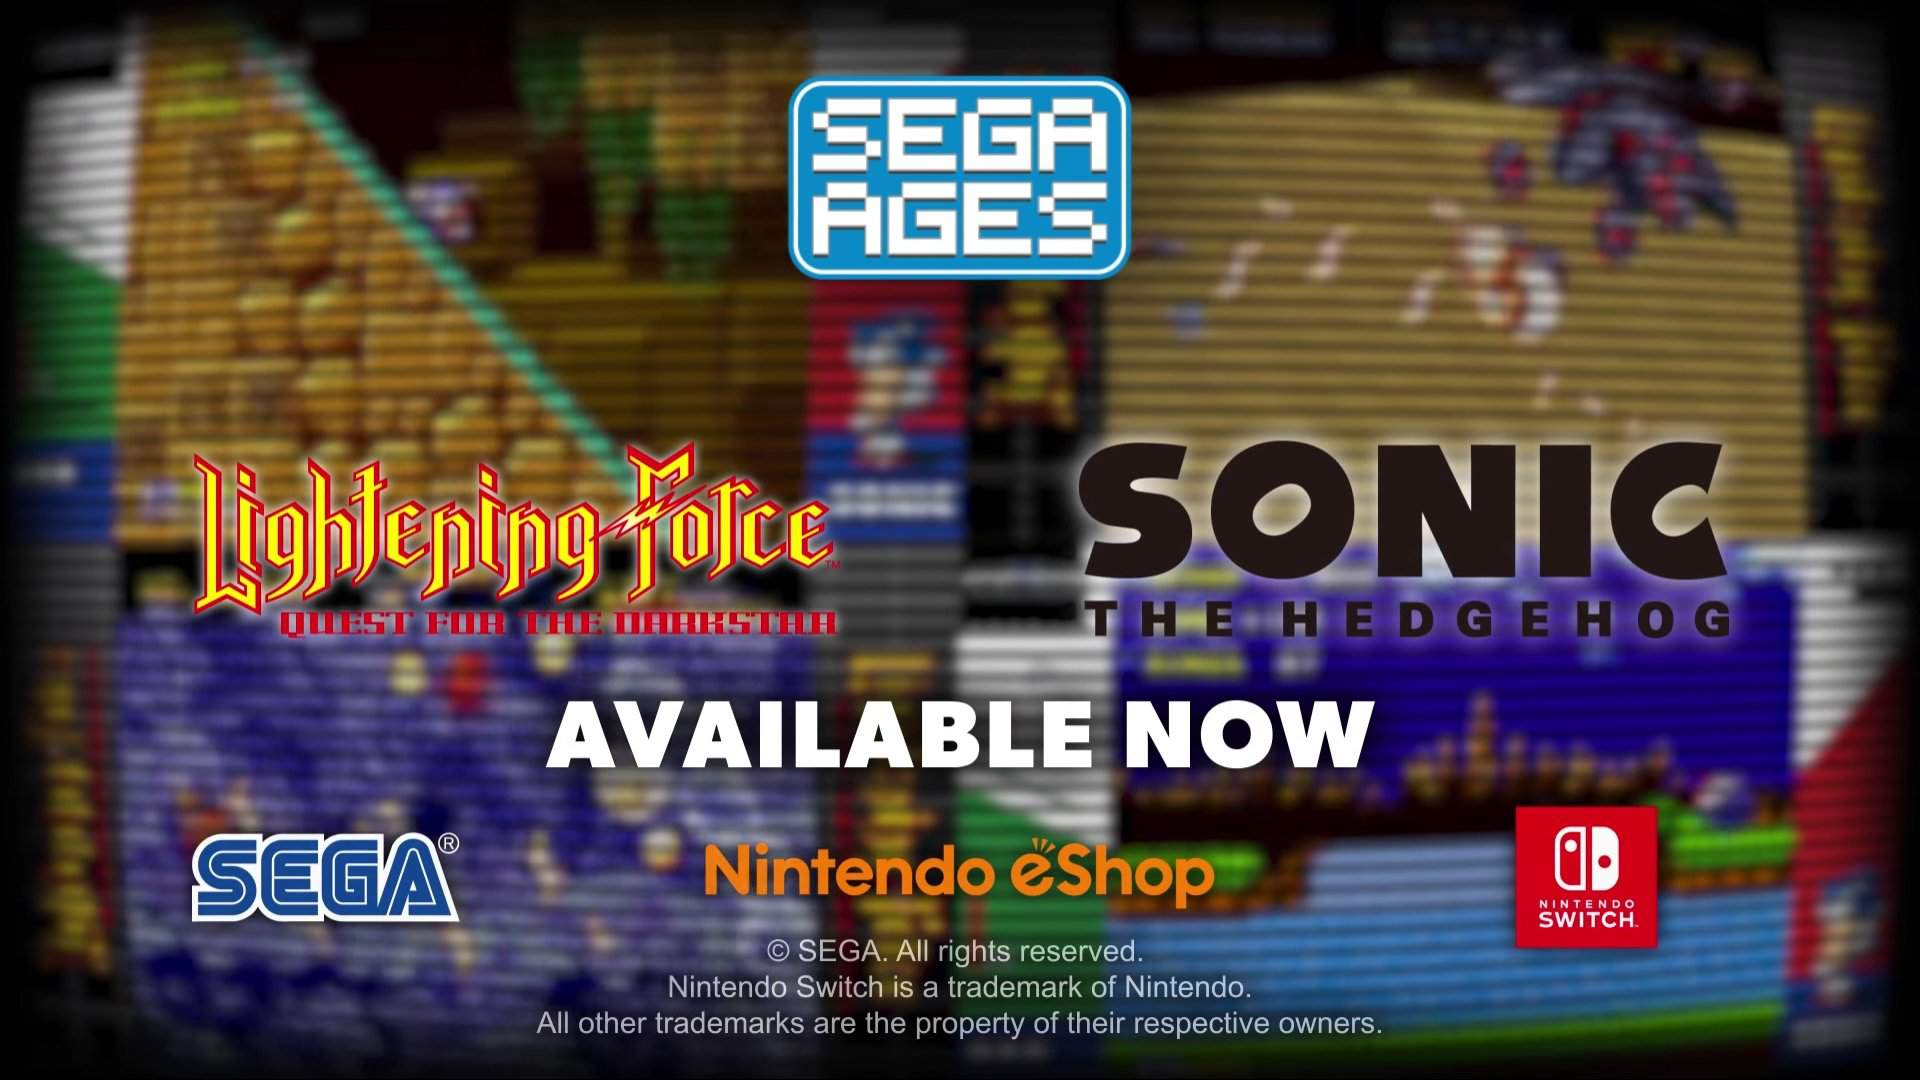 Sega Ages Sonic The Hedgehog And Lightening Force Quest For The Darkstar Out Now In The West Nintendo Switch Amino